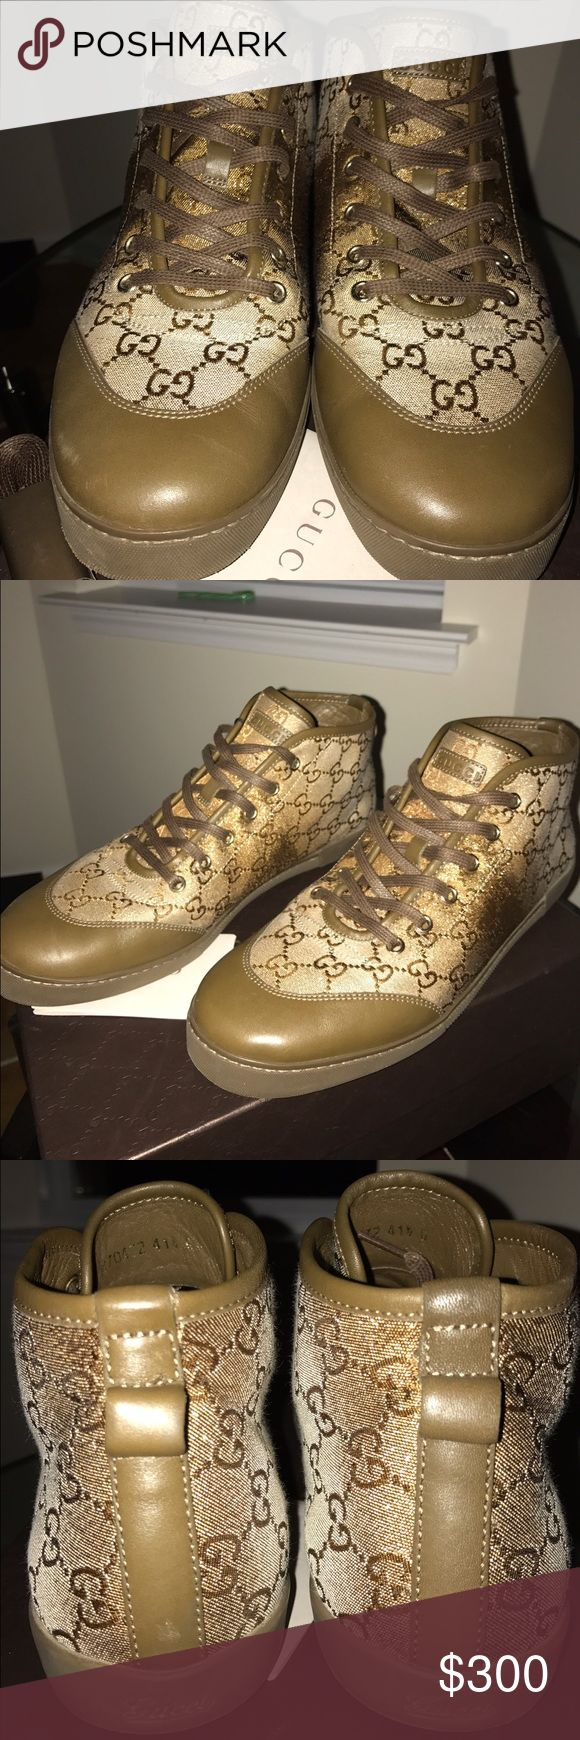 Gucci Lurex Beige Monogram Sneakers 41.5 Step out in comfort and style in these neutral but shimmery lurex Gucci sneakers. Monogram GG with leather tow trim. Gucci imprinted on tongue and back rubber sole Gucci Shoes Sneakers